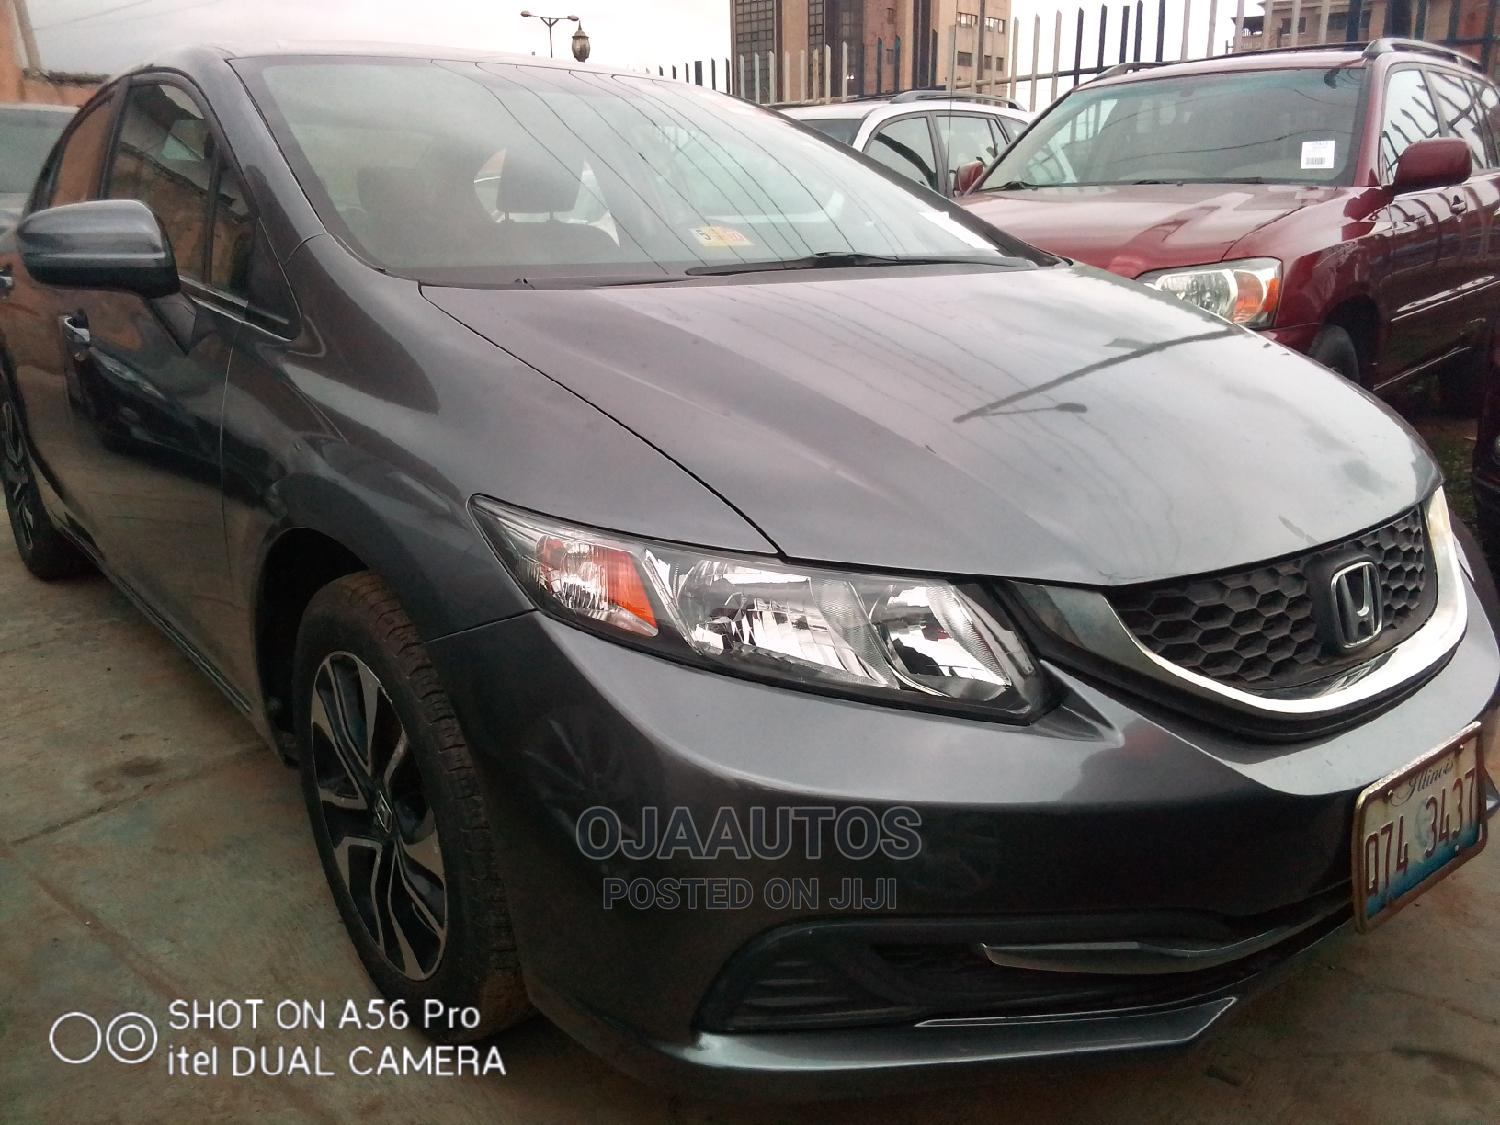 Honda Civic 2016 EX 4dr Sedan (1.5L 4cyl) Gray